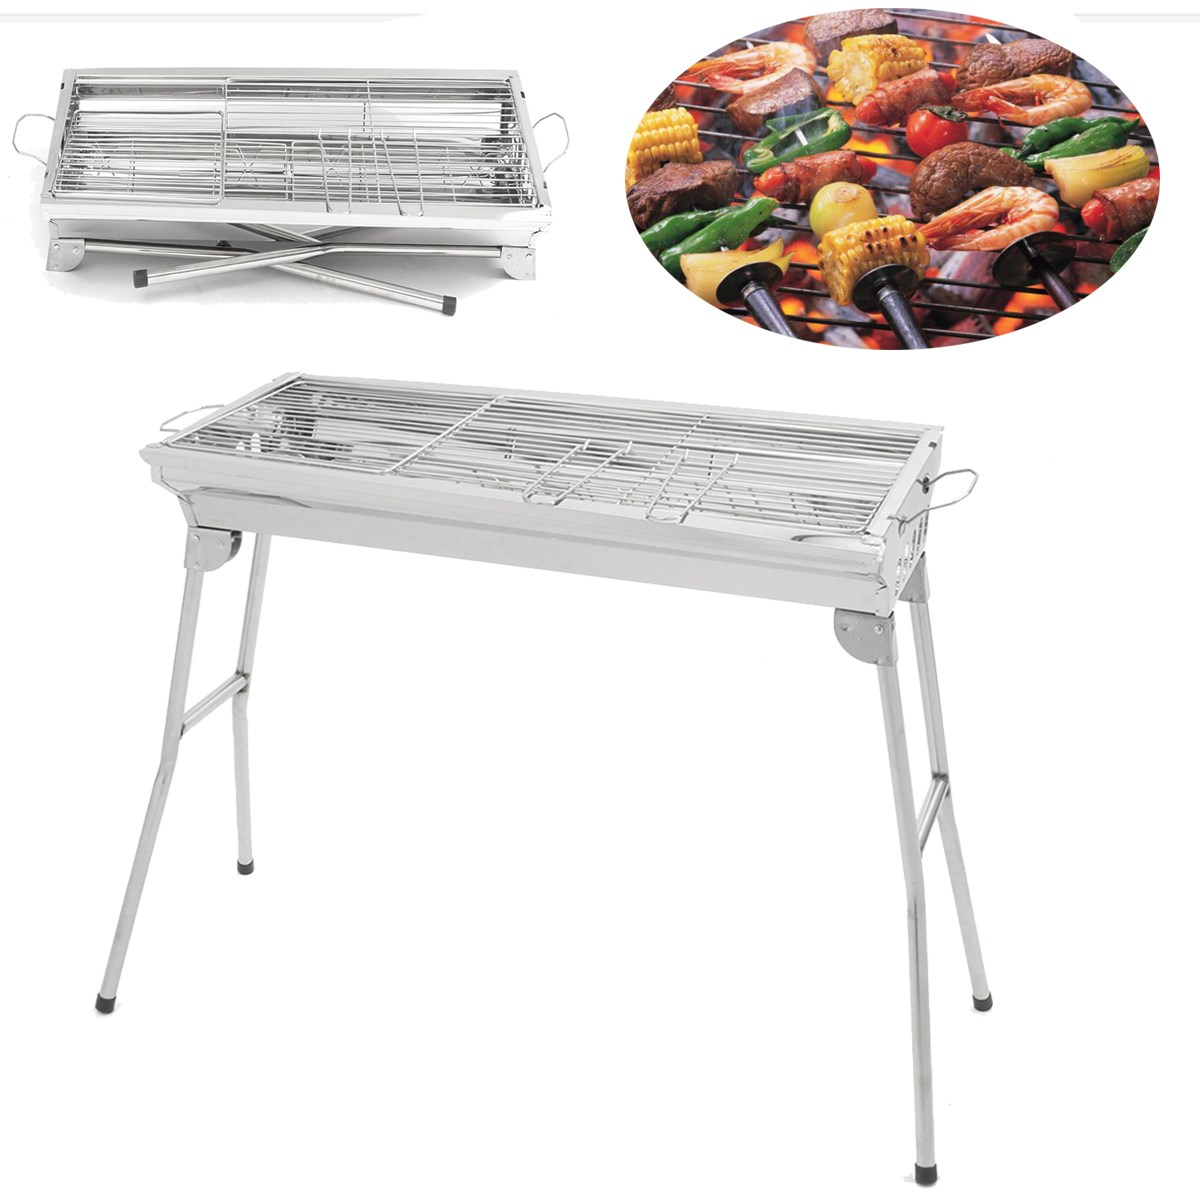 folding stainless steel charcoal bbq grill barbecue. Black Bedroom Furniture Sets. Home Design Ideas